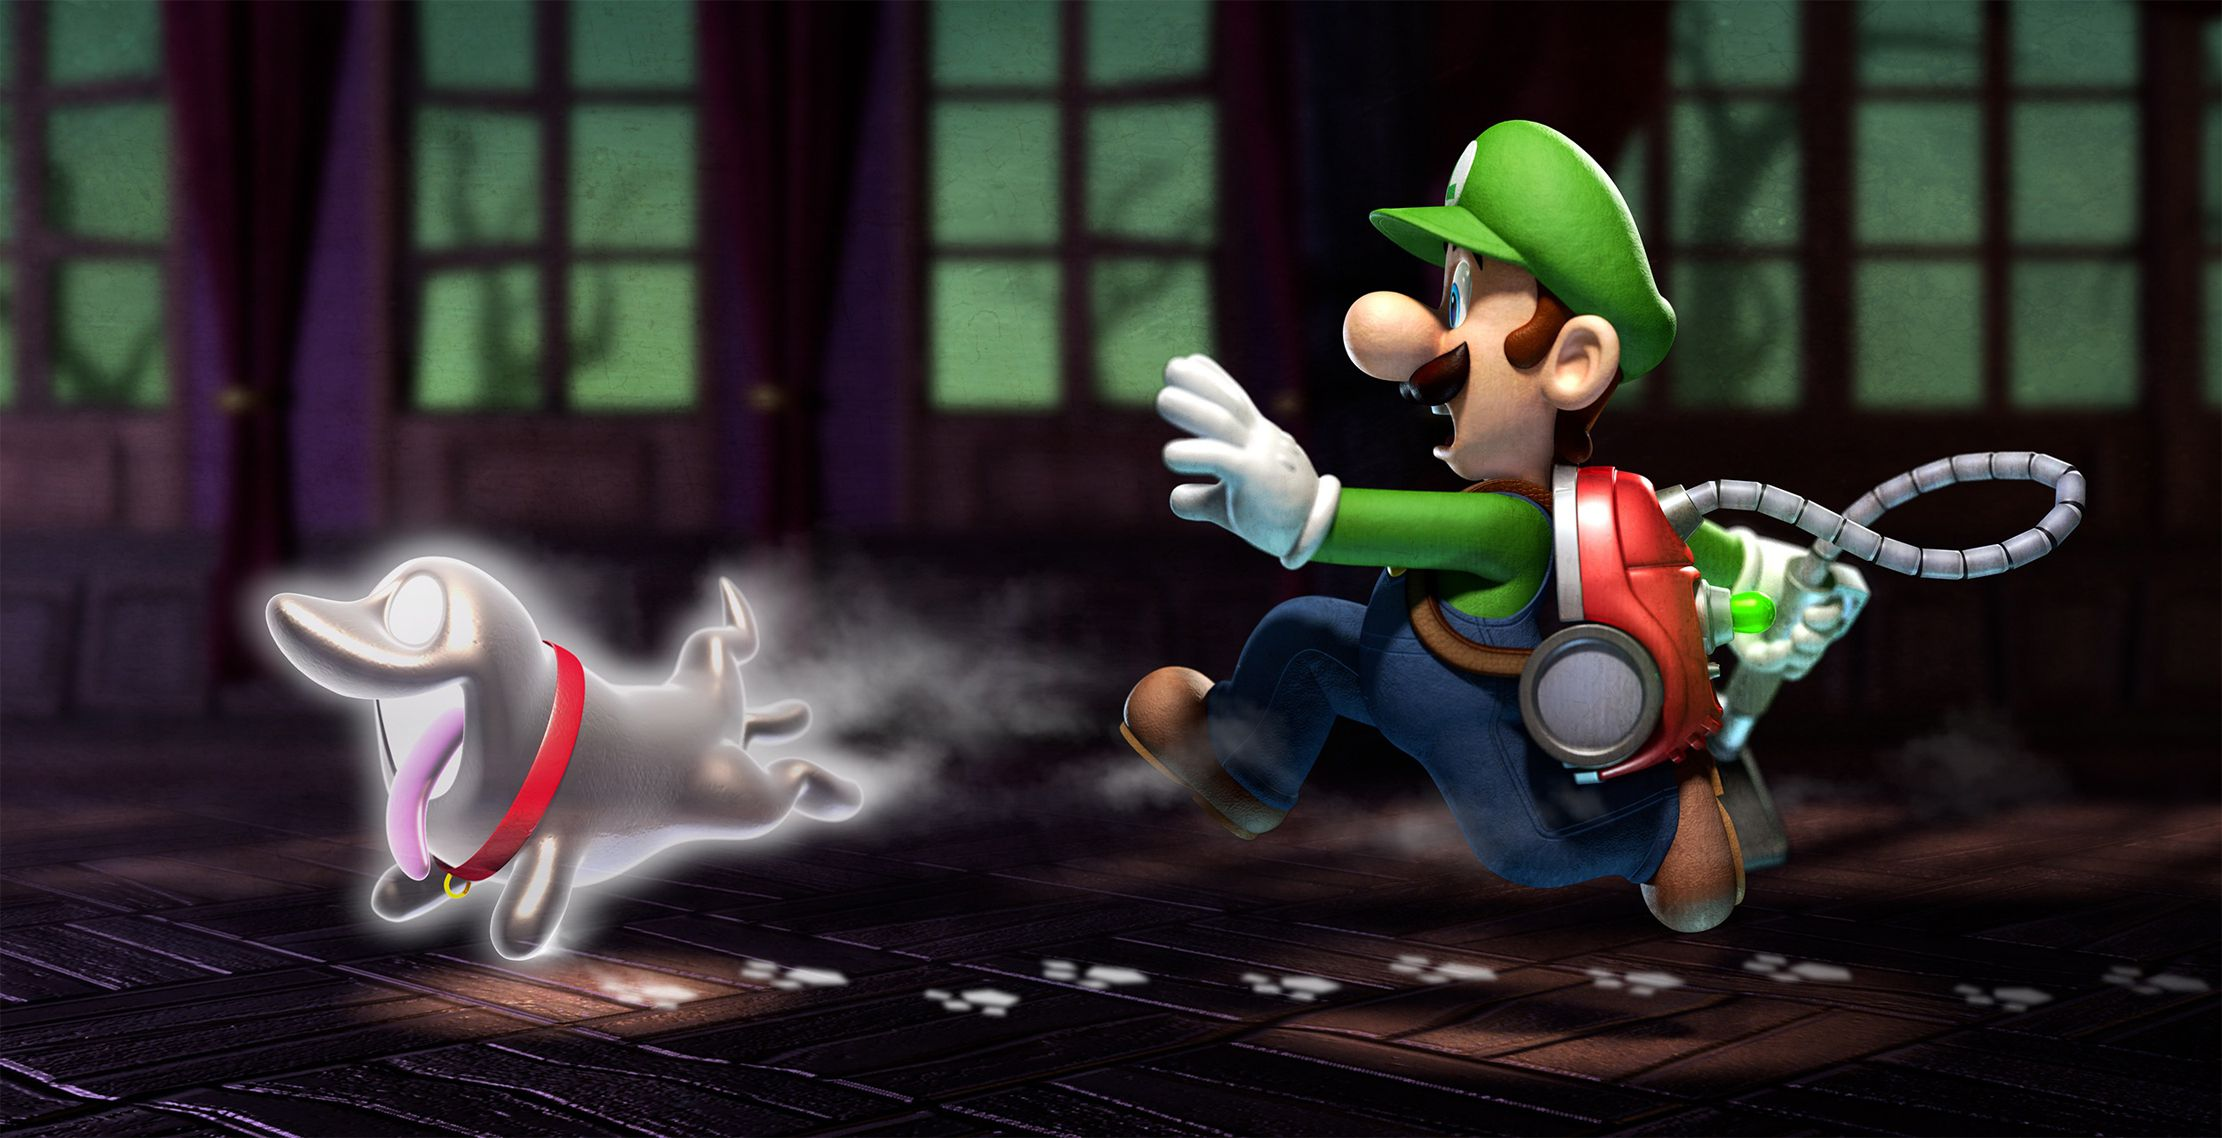 Publicity still for Luigi's Mansion: Dark Moon